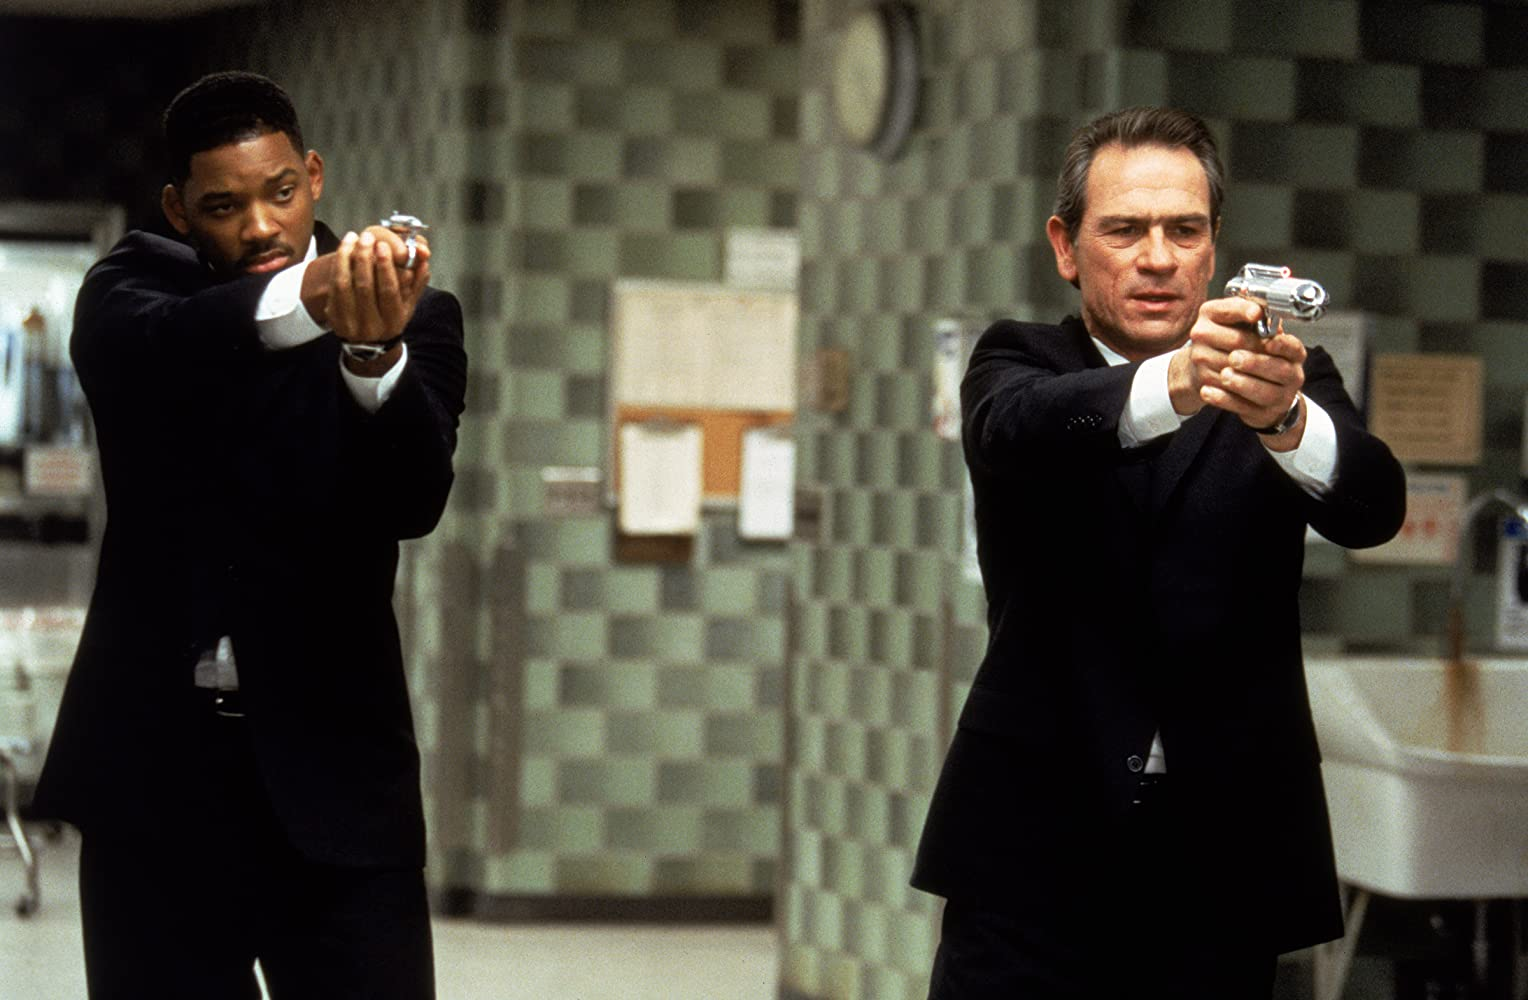 Tommy Lee Jones and Will Smith in Men in Black 1997